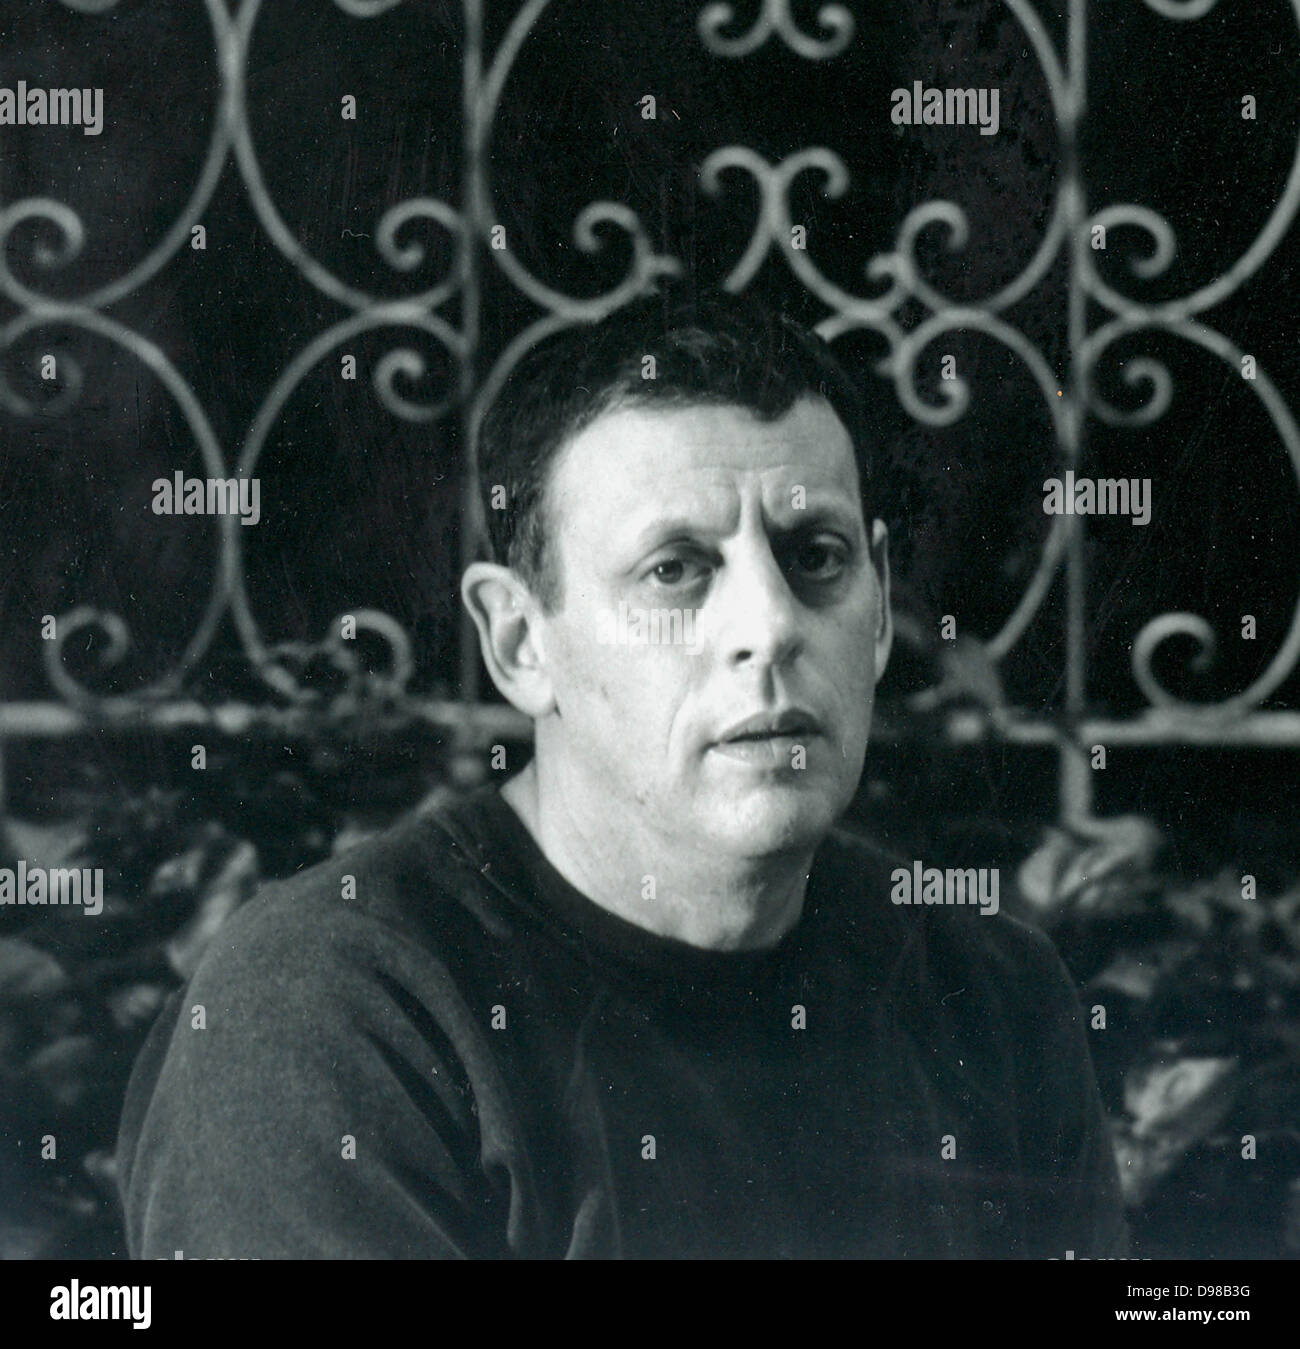 Philip Glass (né en 1937) en 1989. Compositeur américain. Photo Stock